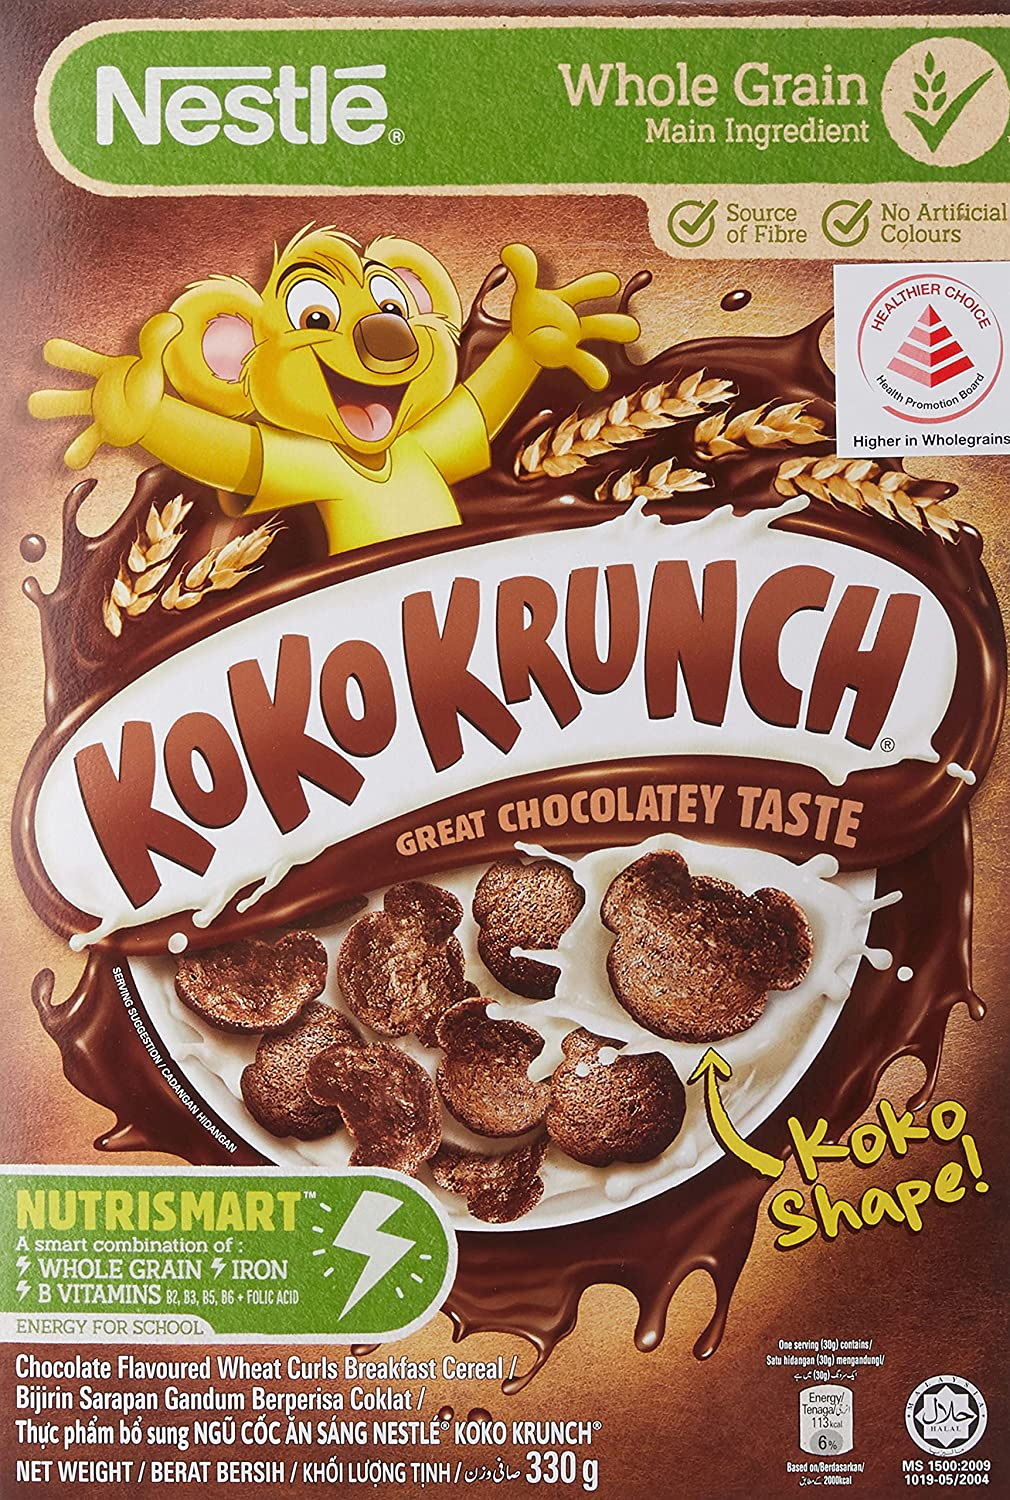 NESTLE KOKO KRUNCH Breakfast Cereal Whole NEW before selling - Milwaukee Mall Recipe Healthy New